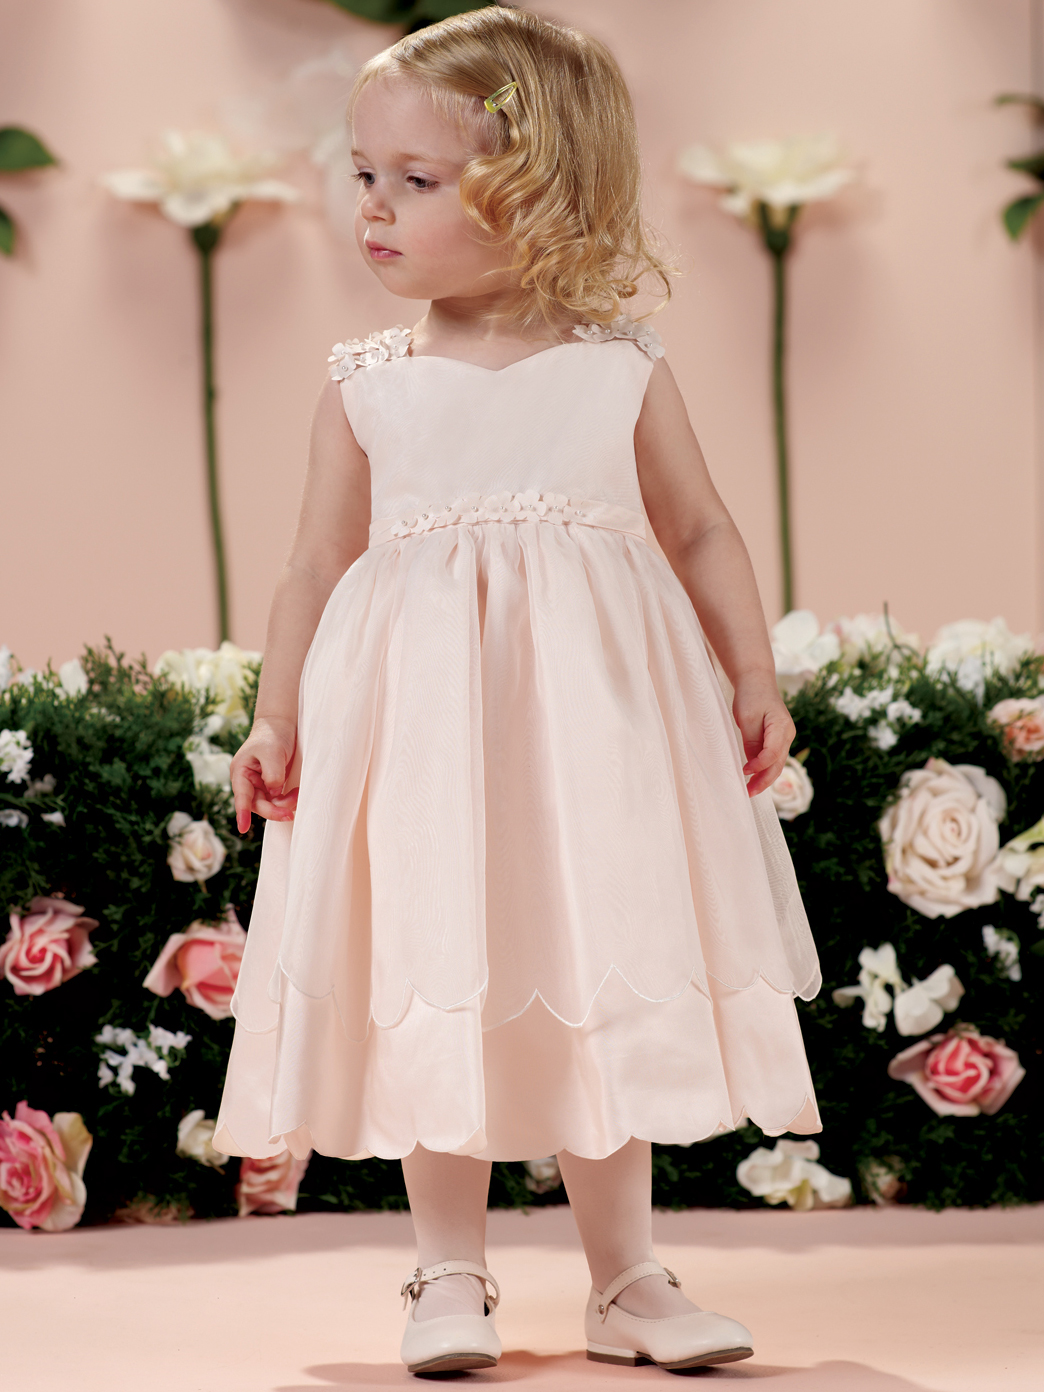 d4b8a282c Flowered Straps Tiered Skirt Joan Calabrese Girls Formal Gown ...